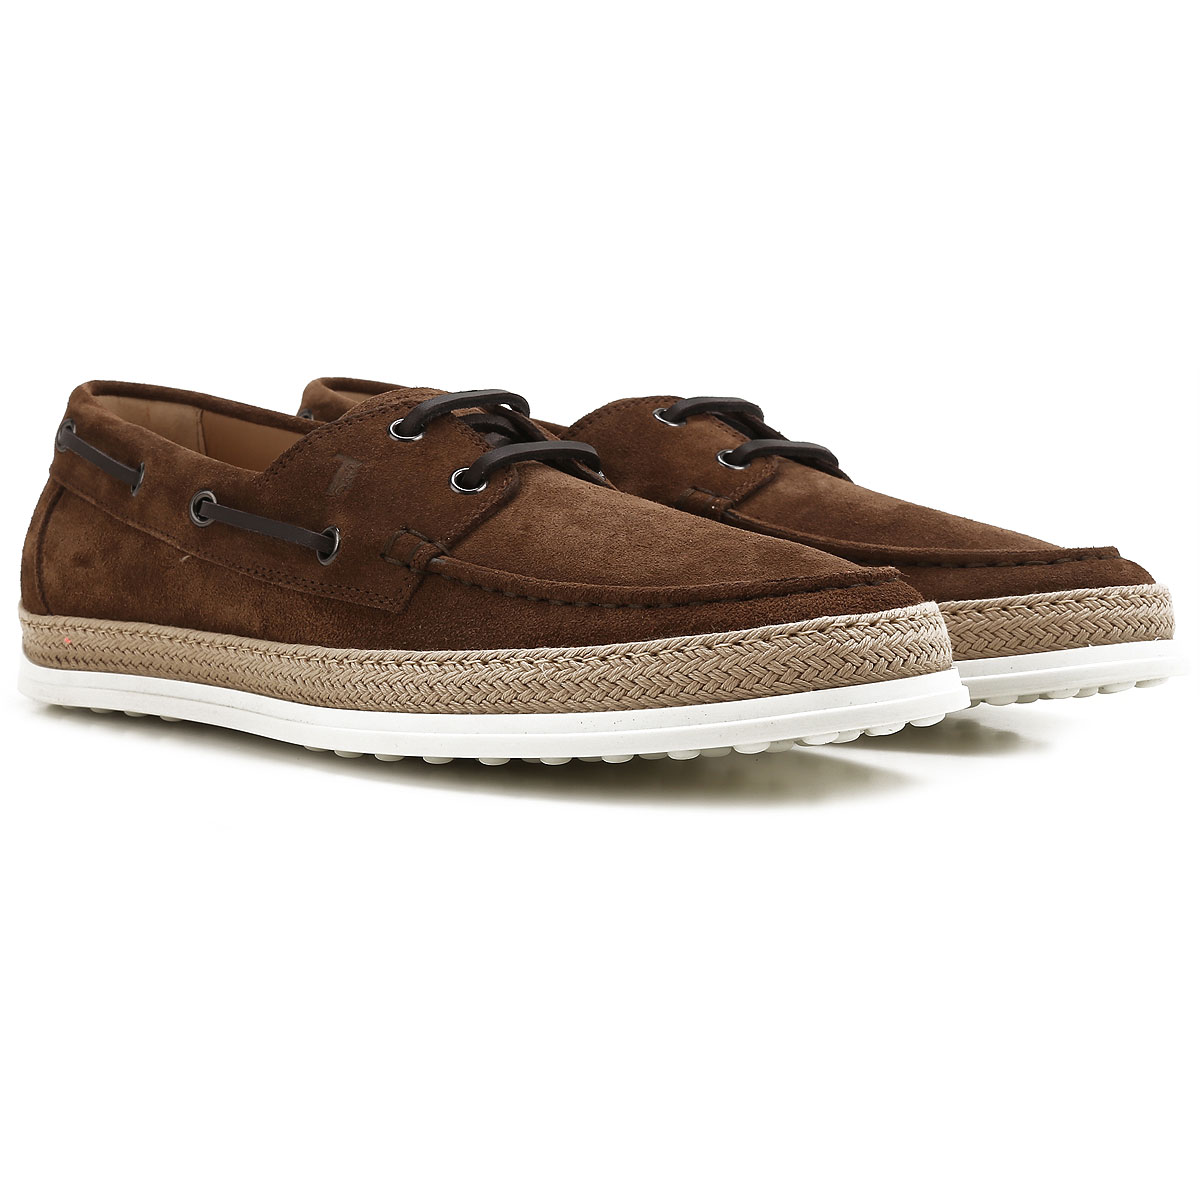 Image of Tods Boat Shoes for Men, Deck Shoes On Sale, Tobacco, suede, 2017, 10 10.5 7.5 8.5 9